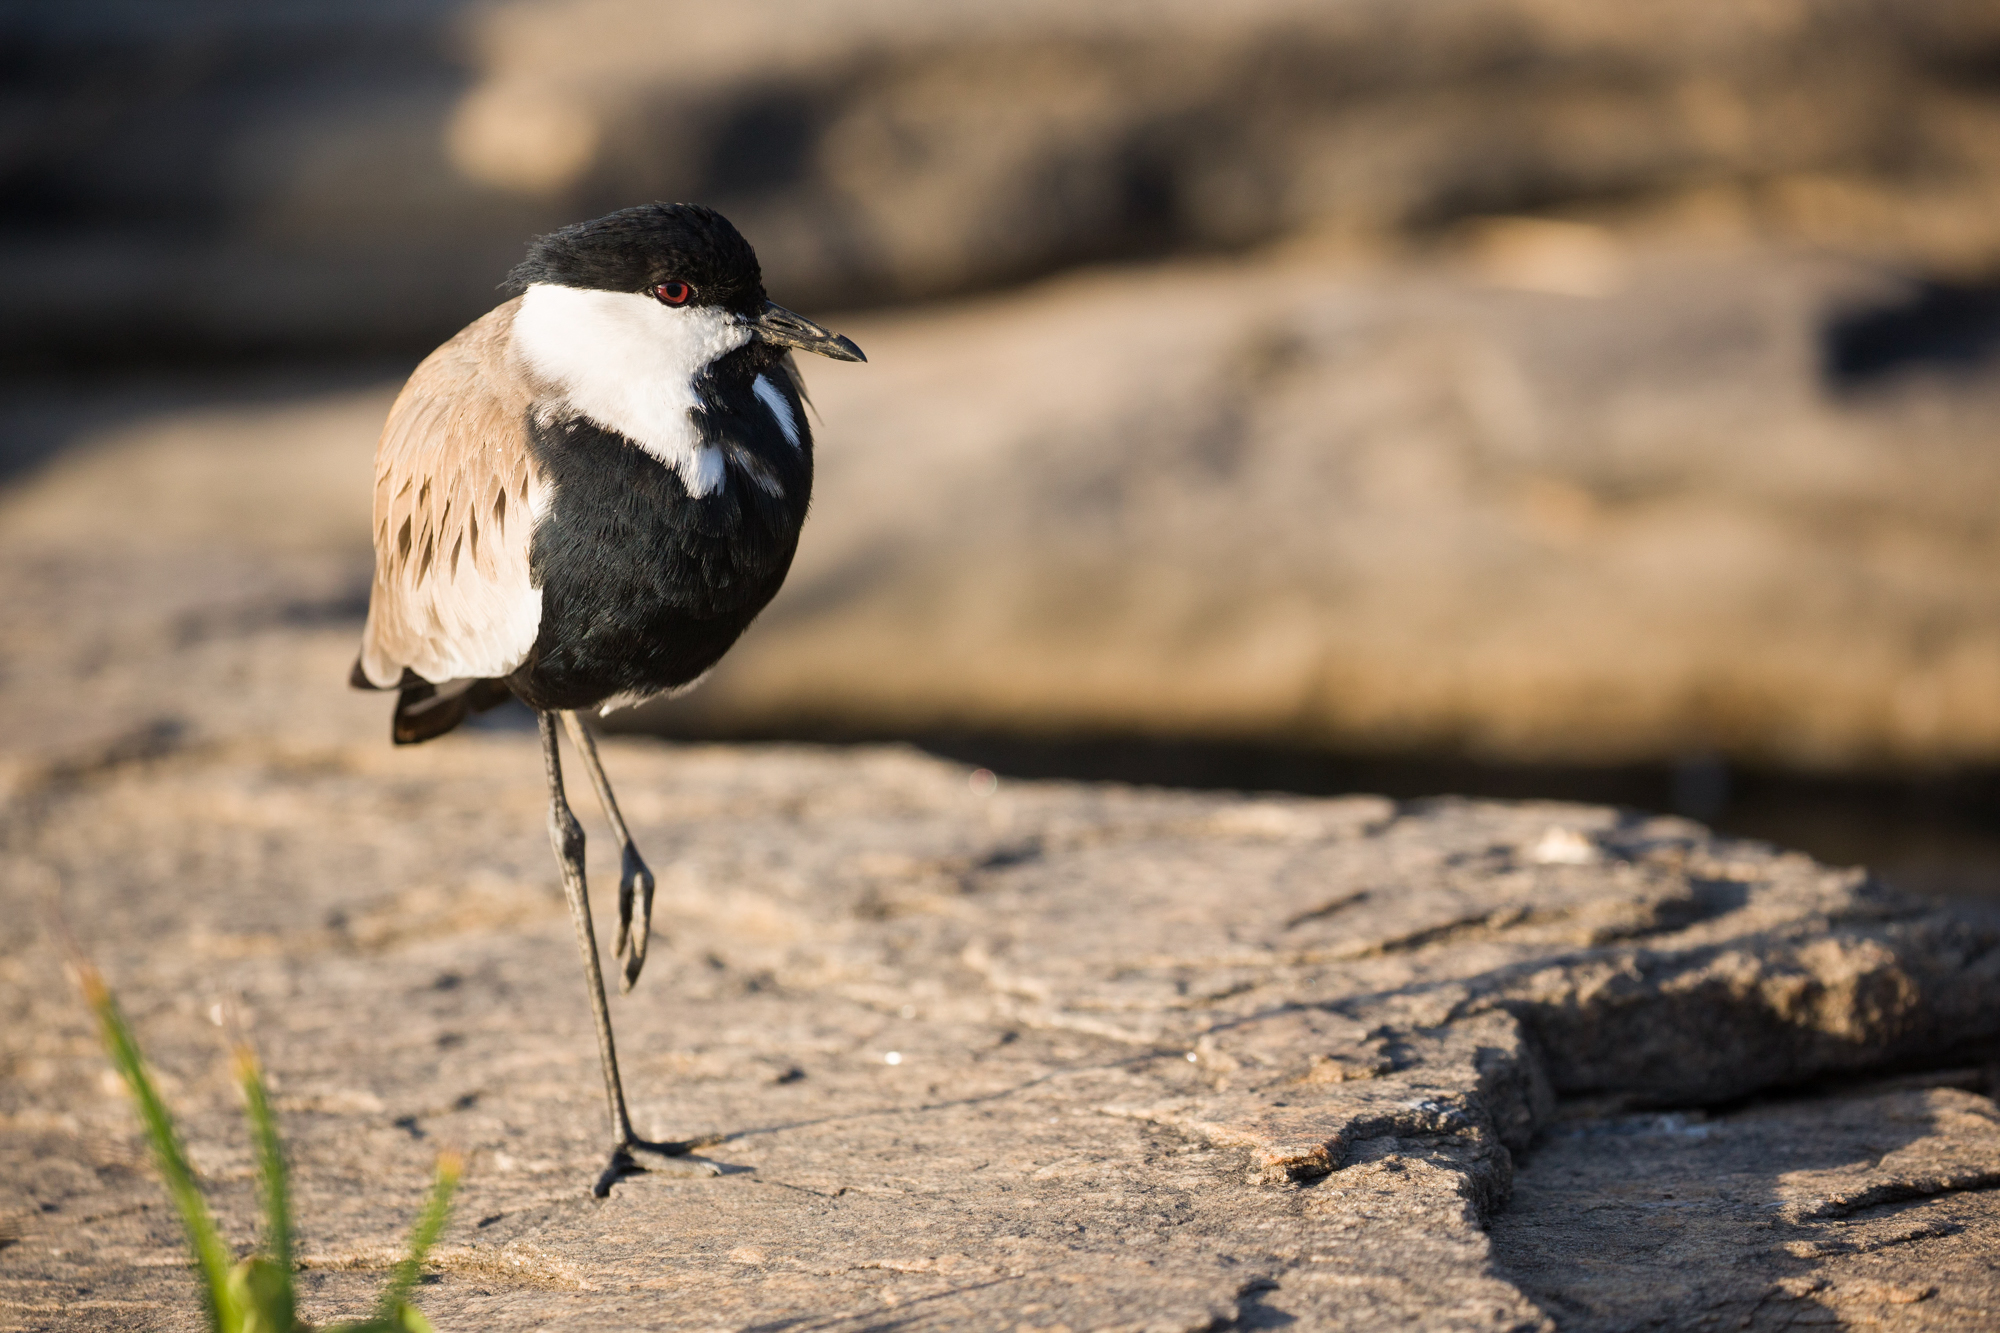 A Plover standing on one leg